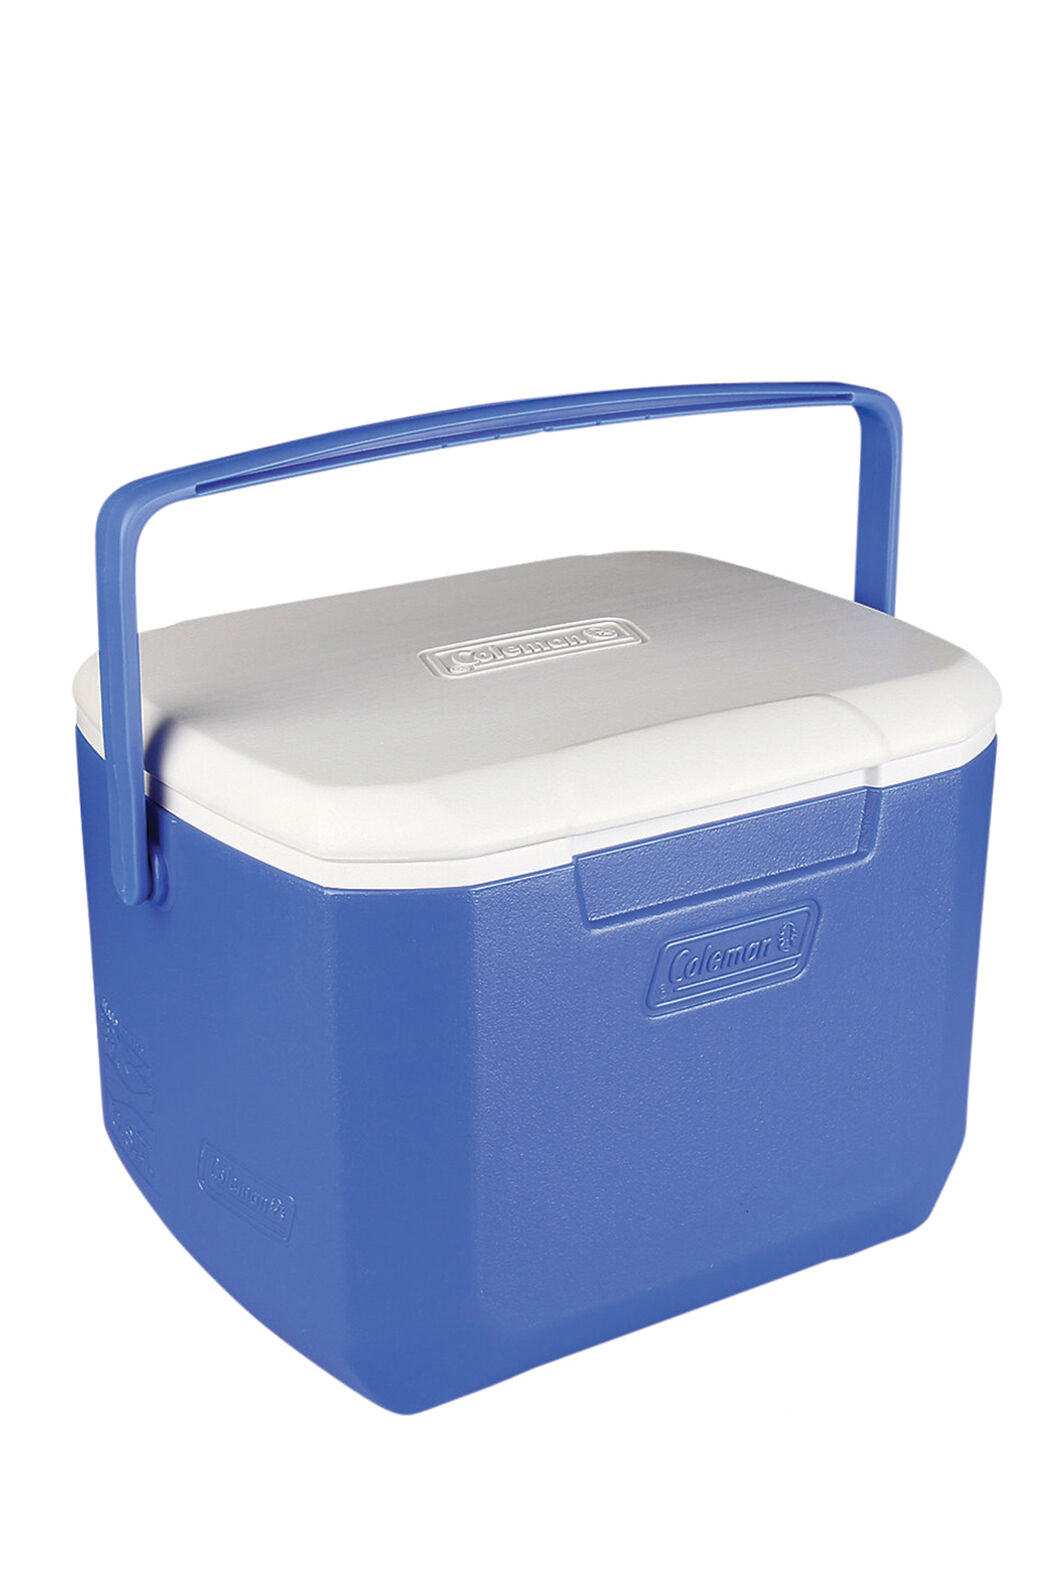 Coleman Excursion 15L Cooler, None, hi-res